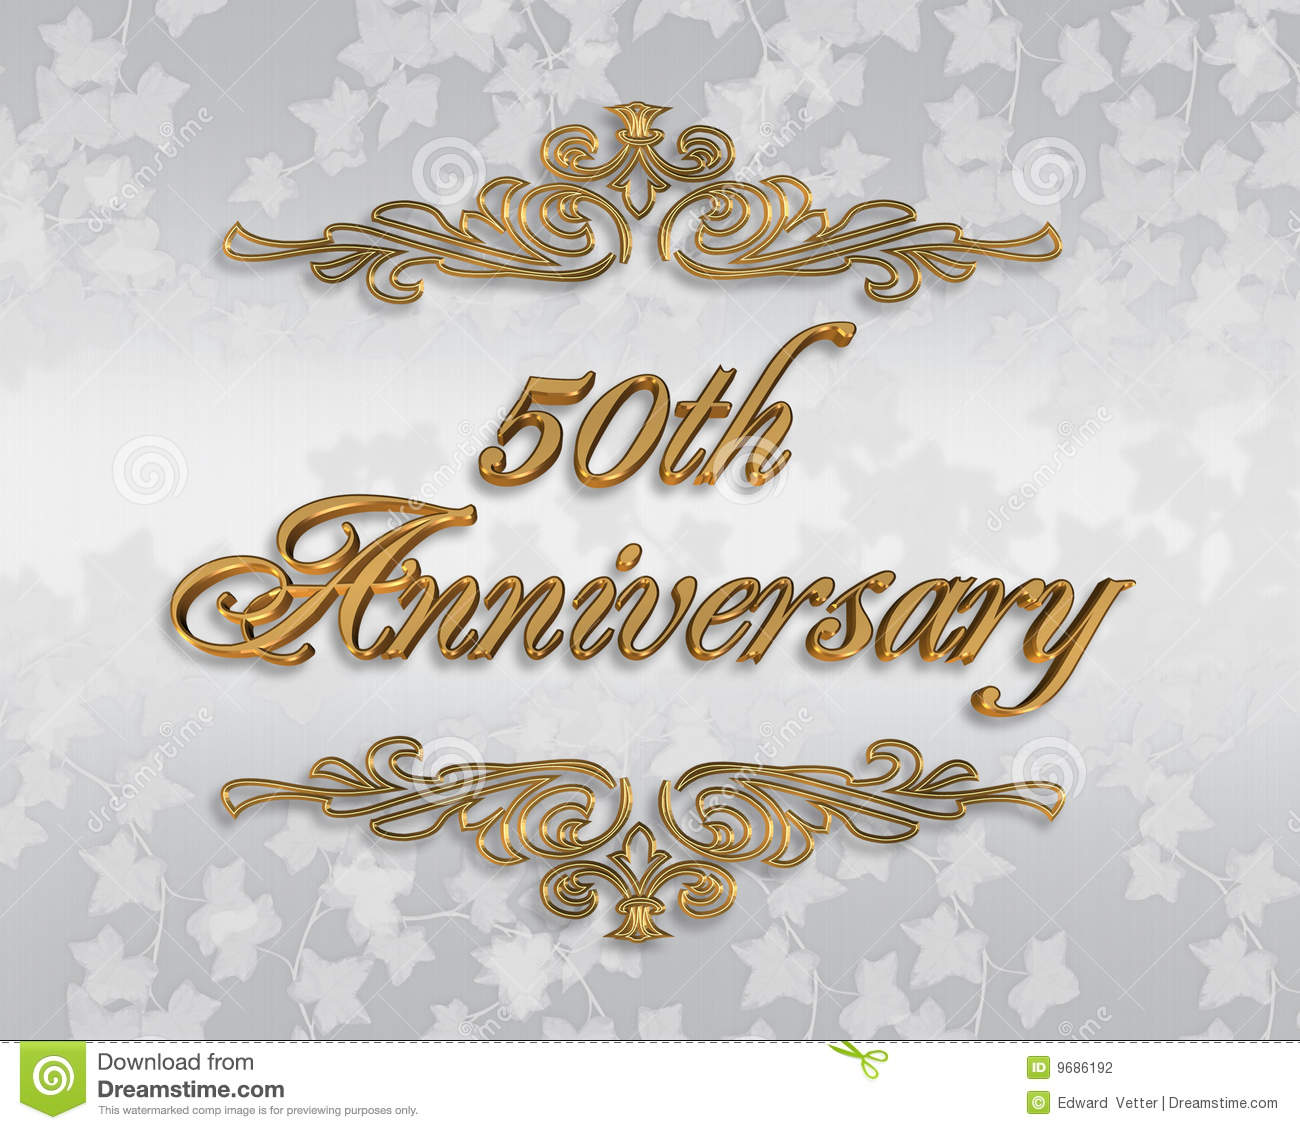 50th anniversary powerpoint template image collections - templates, Presentation templates